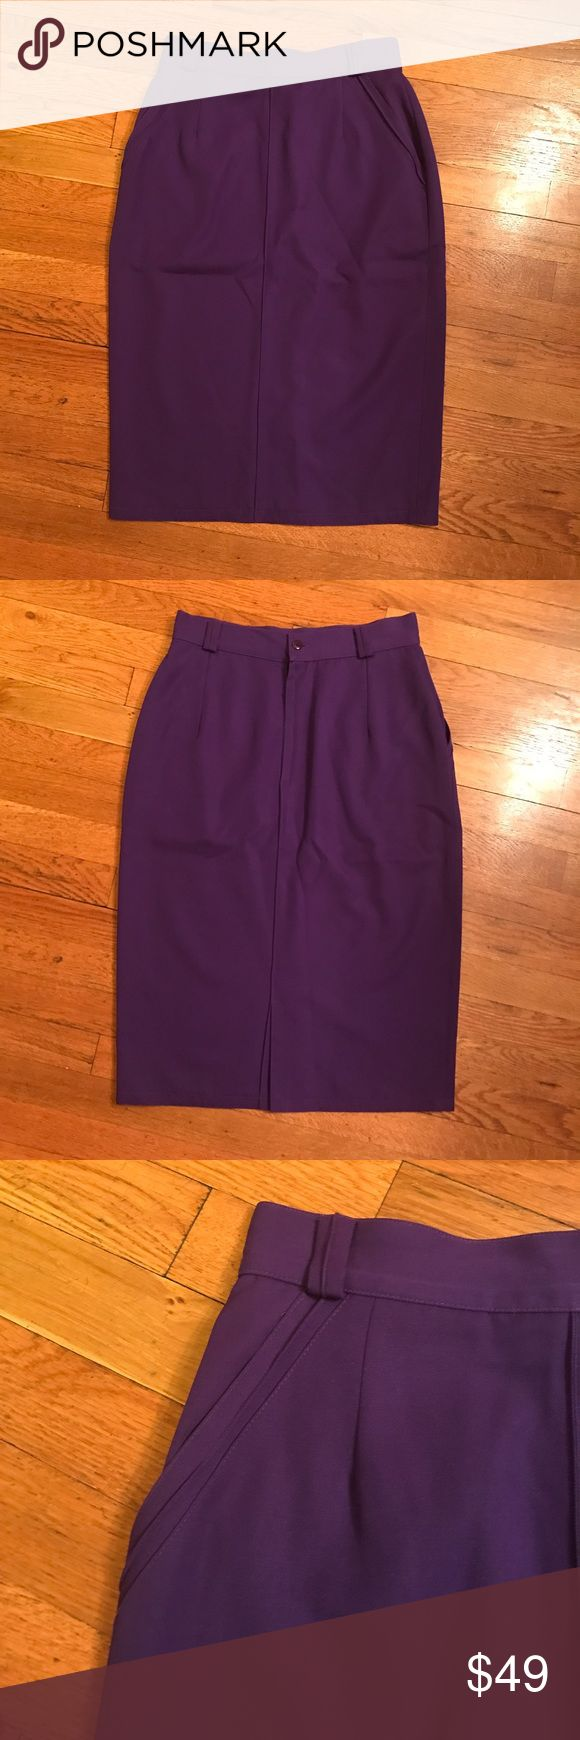 Vintage Gianni Versace Purple Pencil Skirt Exuberant purple pencil skirt from the famed Gianni Versace. Sure to be a standout piece. Pockets in the front, and button and zipper and slit in the back. No size tag but I would estimate size 2-4 and please see measurements. Length is 27 inch. Across the waist is 13.75 inch. Please ask if you'd like more measurements! Versace Skirts Pencil